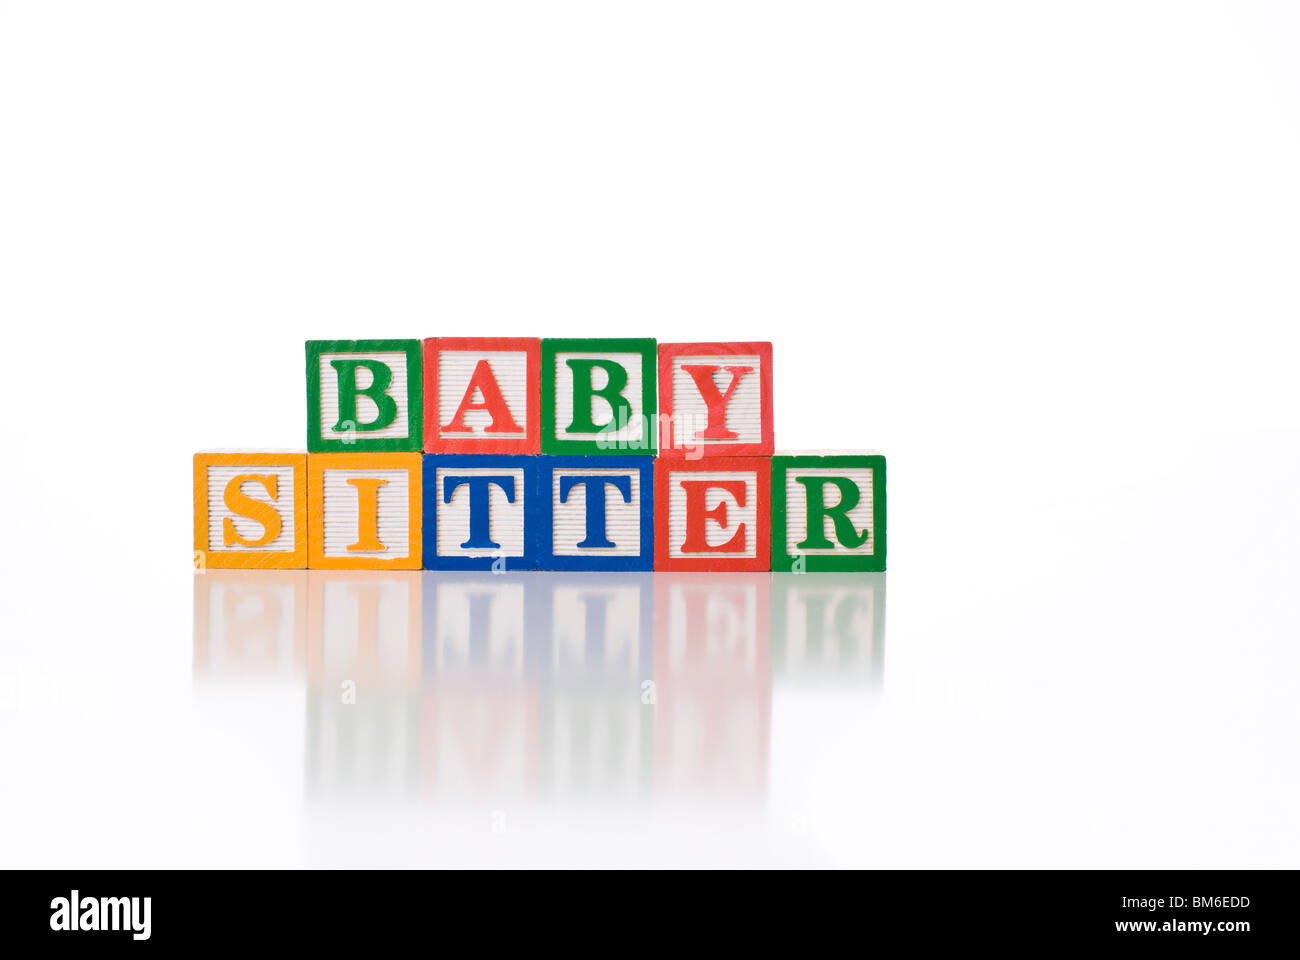 Colorful Childrenu0027s Blocks Spelling The Words BABY SITTER  Another Word For Babysitter